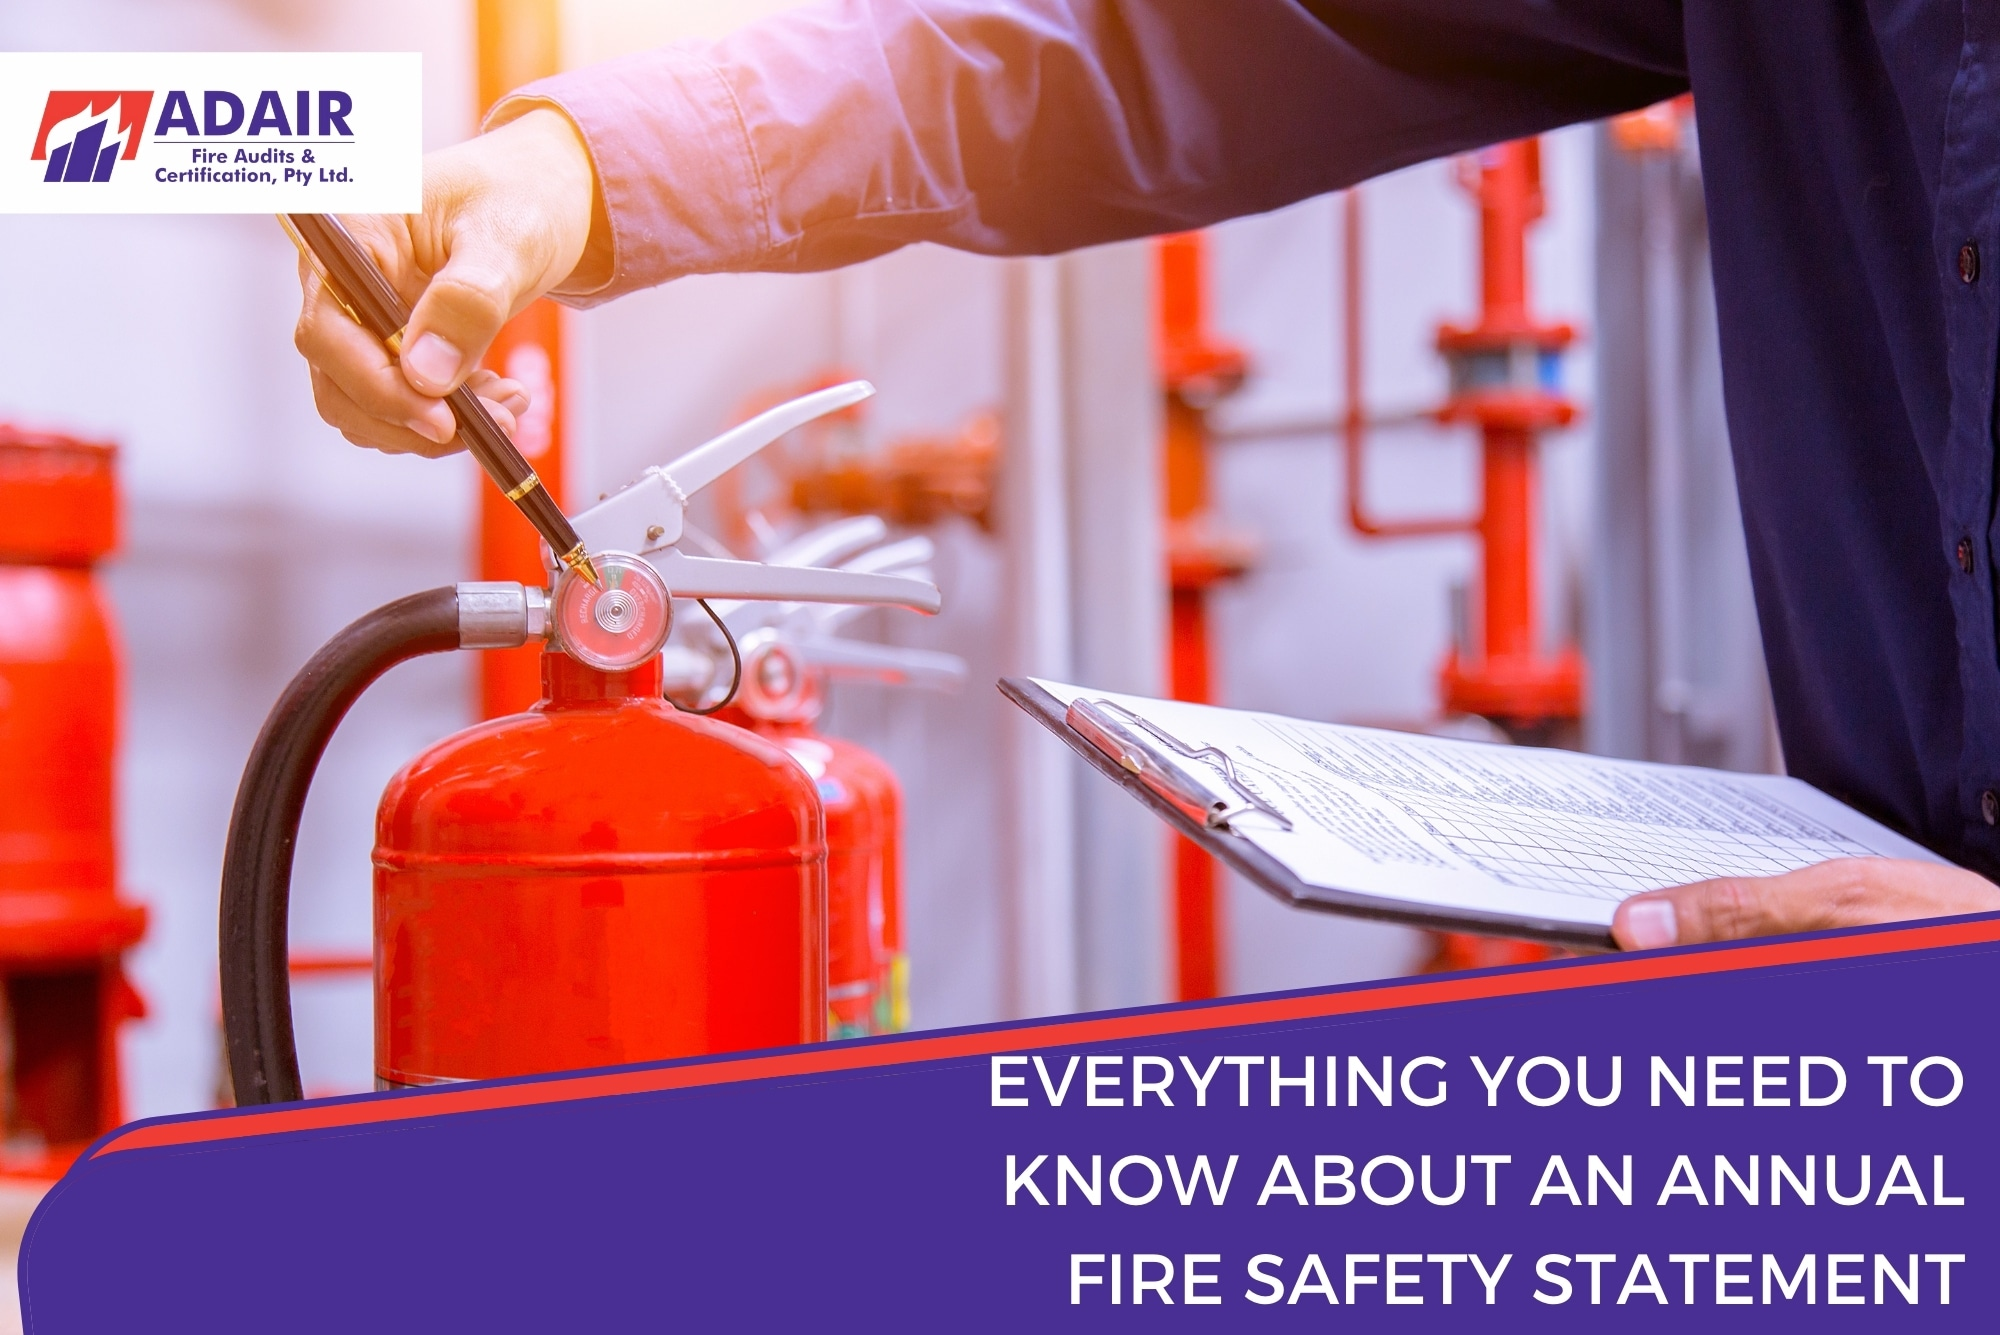 Everything you need to know about an Annual Fire Safety Statement